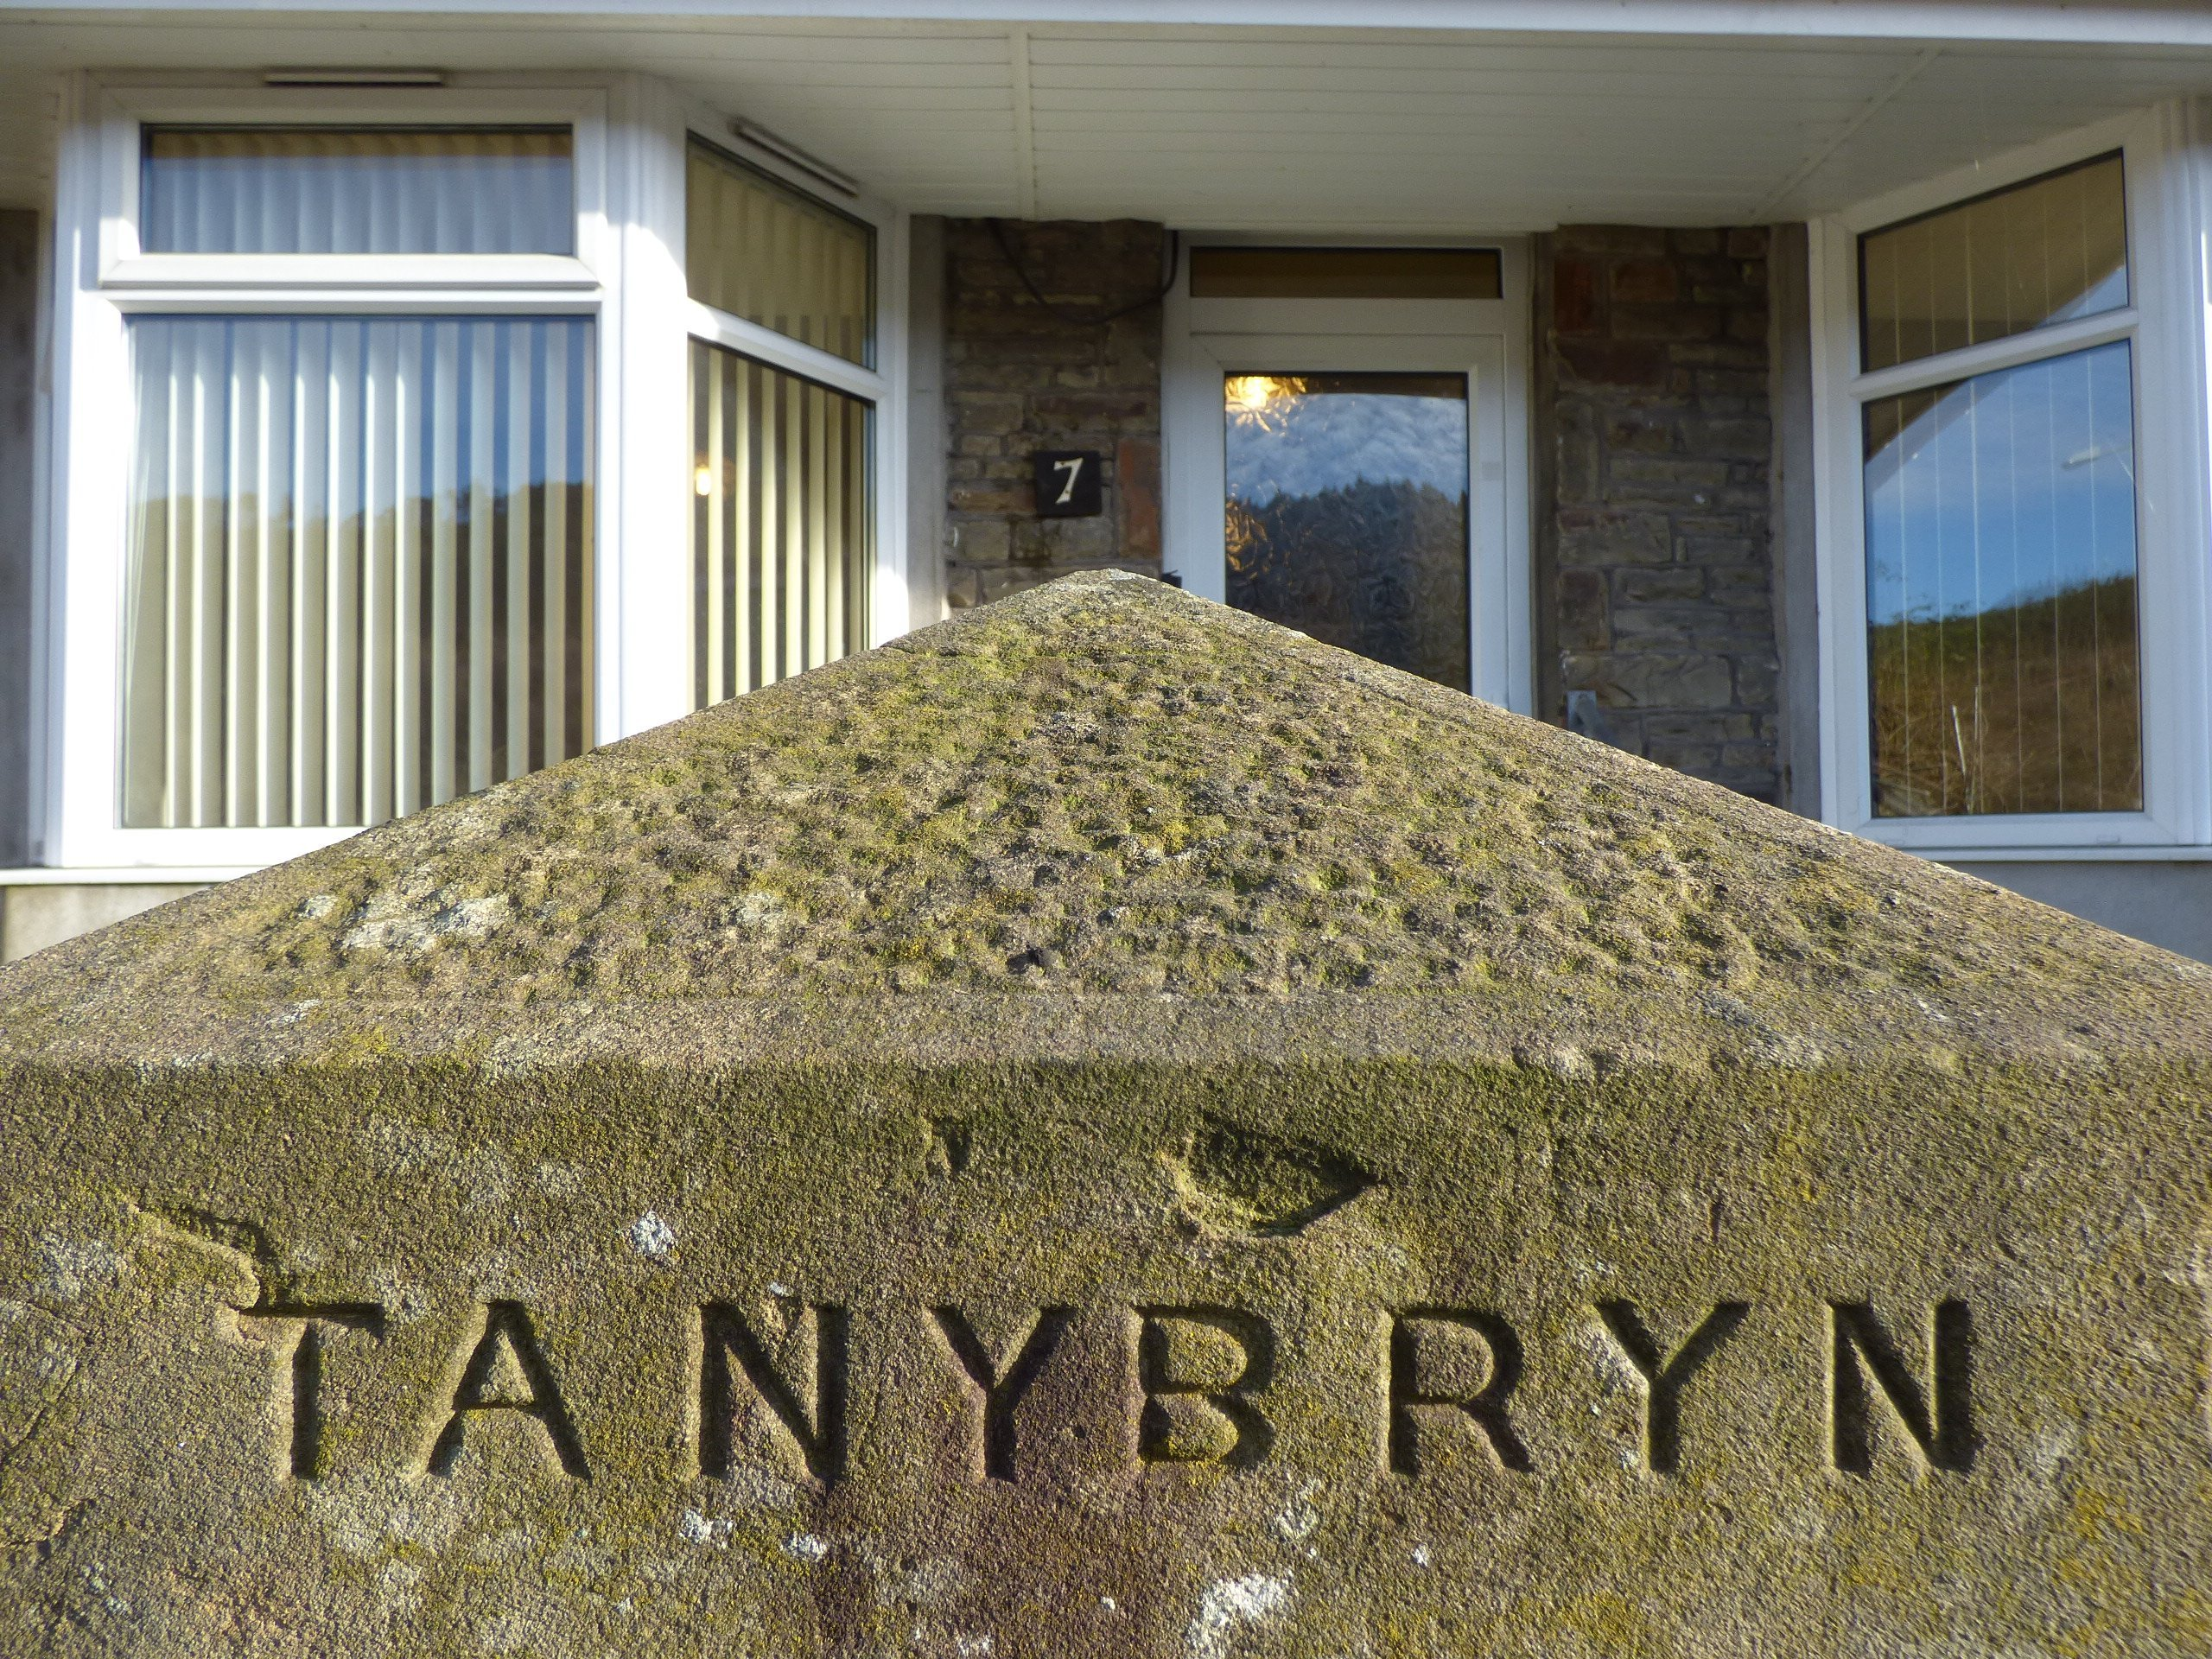 Wisemove Property for sale. Tanybryn House, Pontycymmer